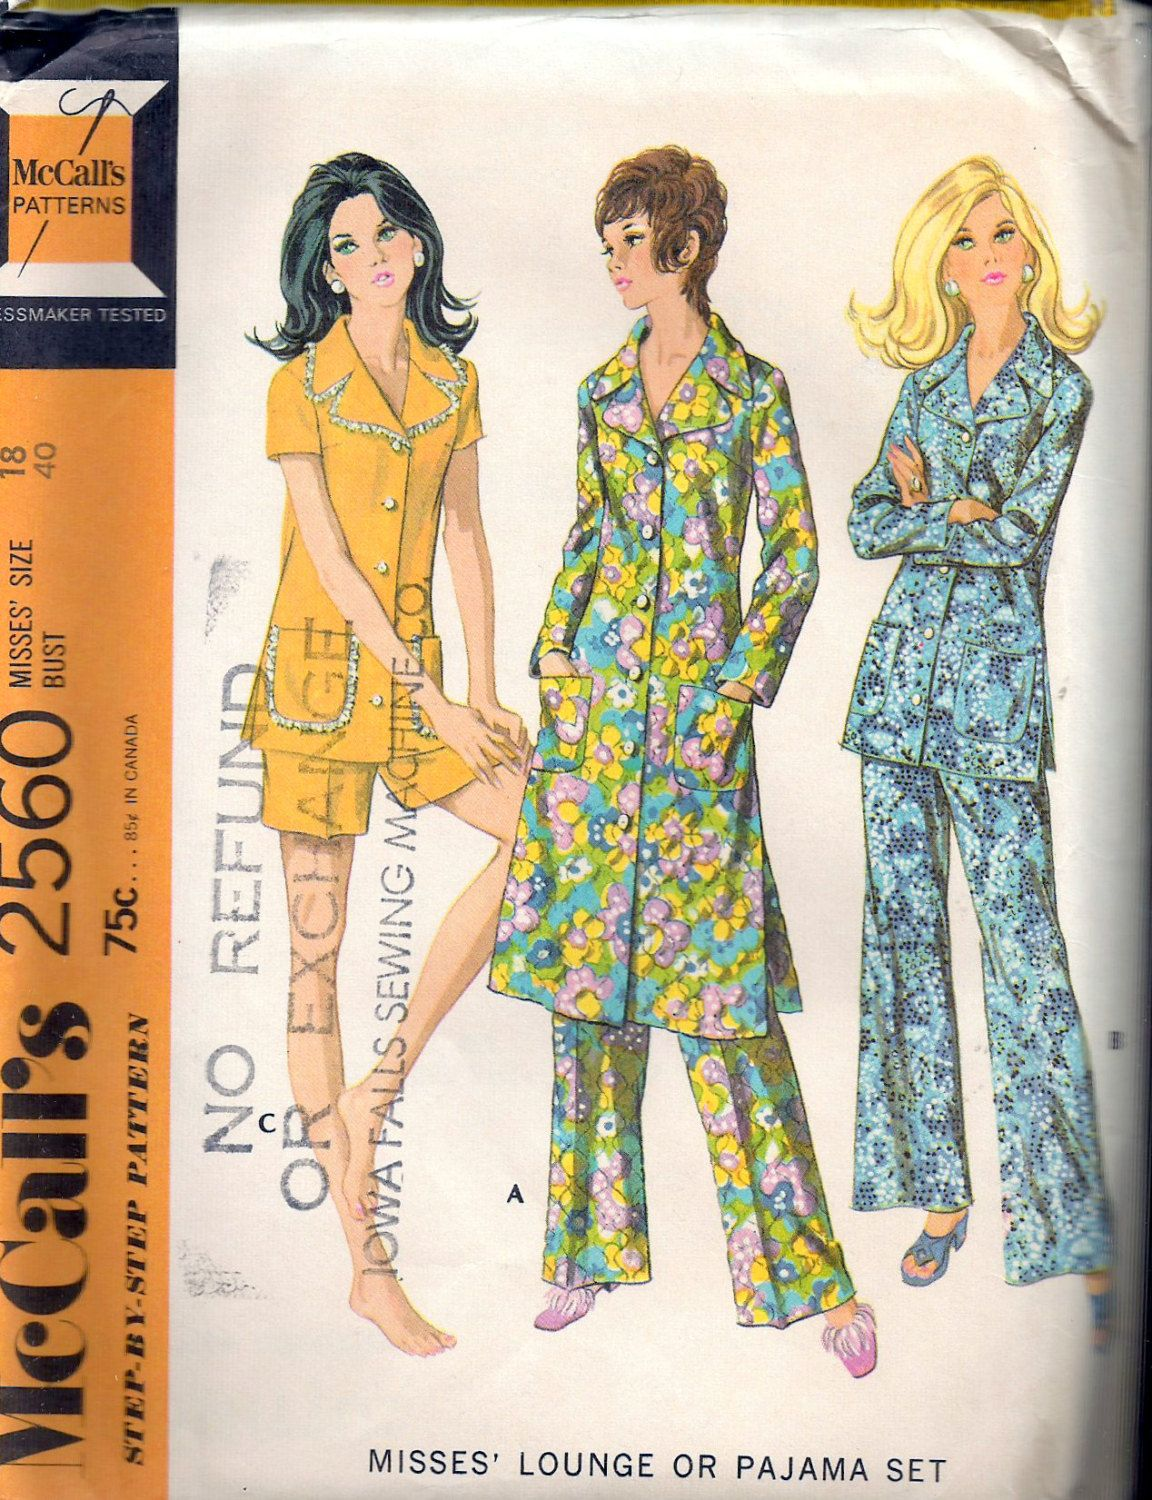 "Vintage 1970 McCall's 2560 Retro Lounge or Pajama Set Sewing Pattern Size 18 Bust 40"" UNCUT by Recycledelic1 on Etsy"